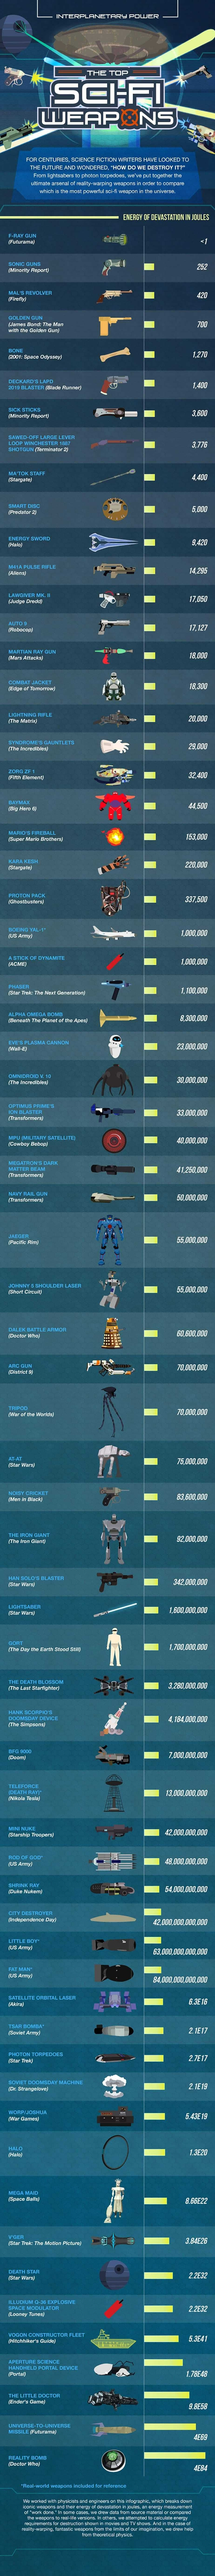 What are the top weapons in science fiction? # Infographic